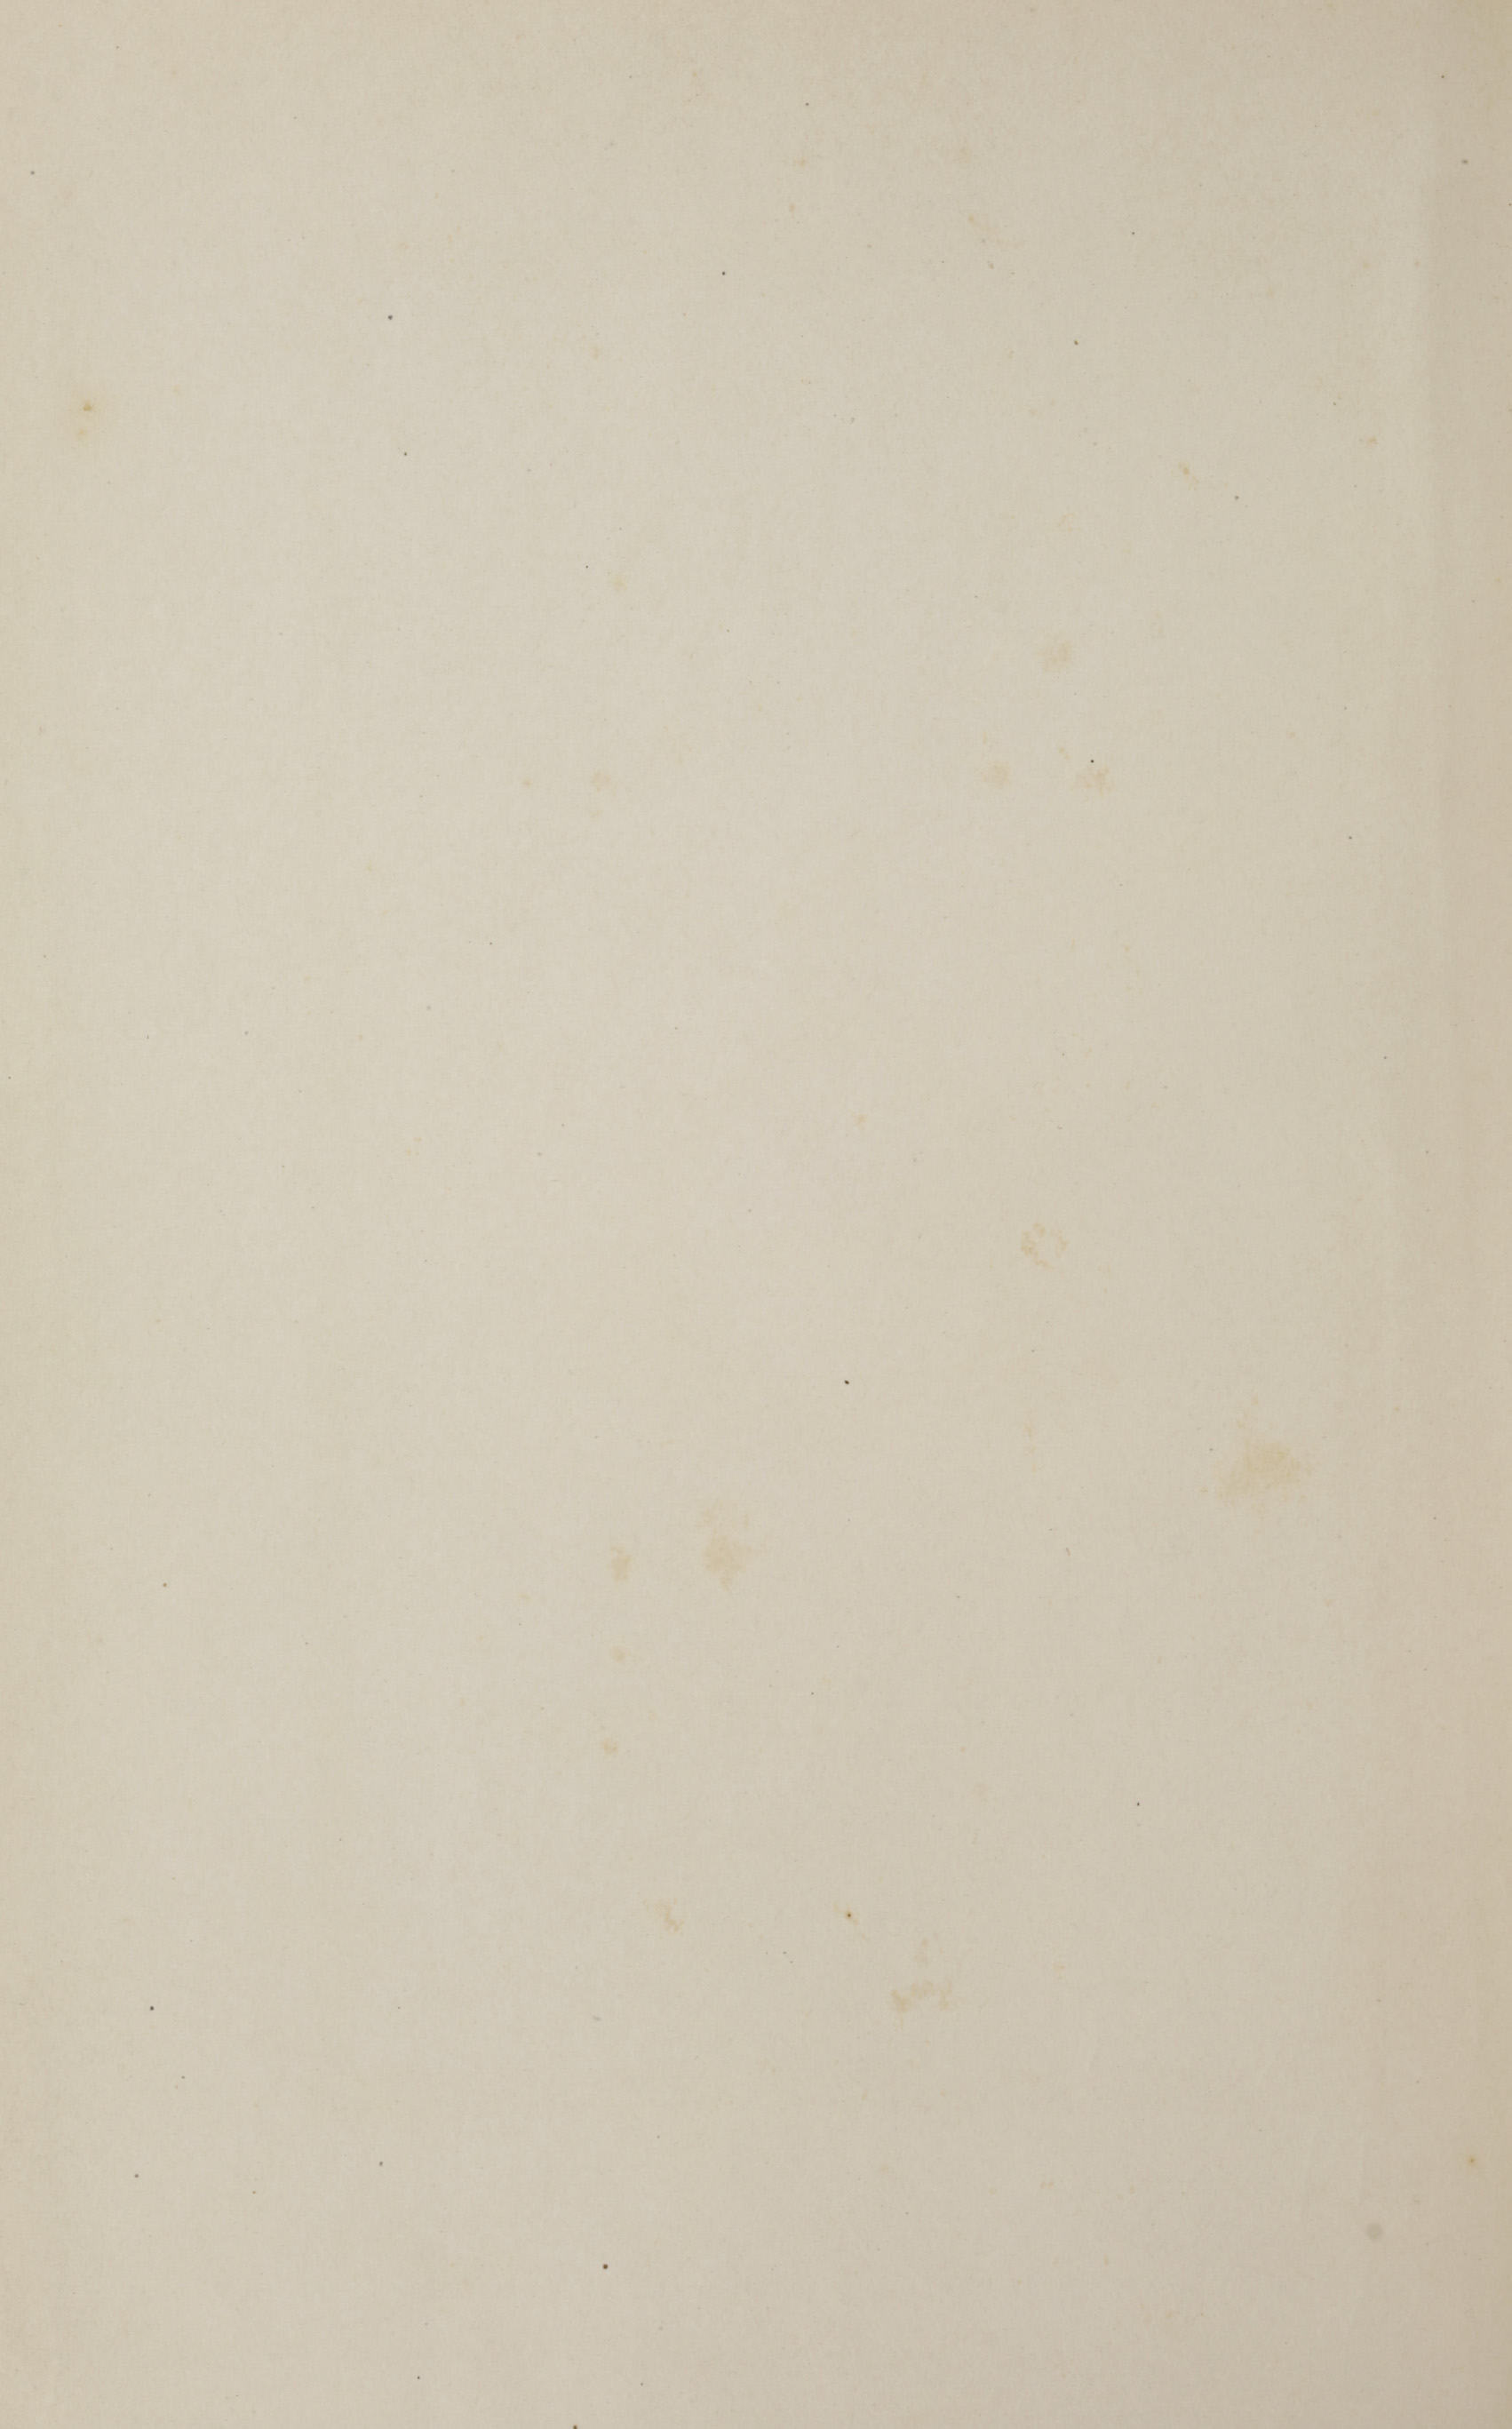 Charleston Yearbook, 1917, blank page